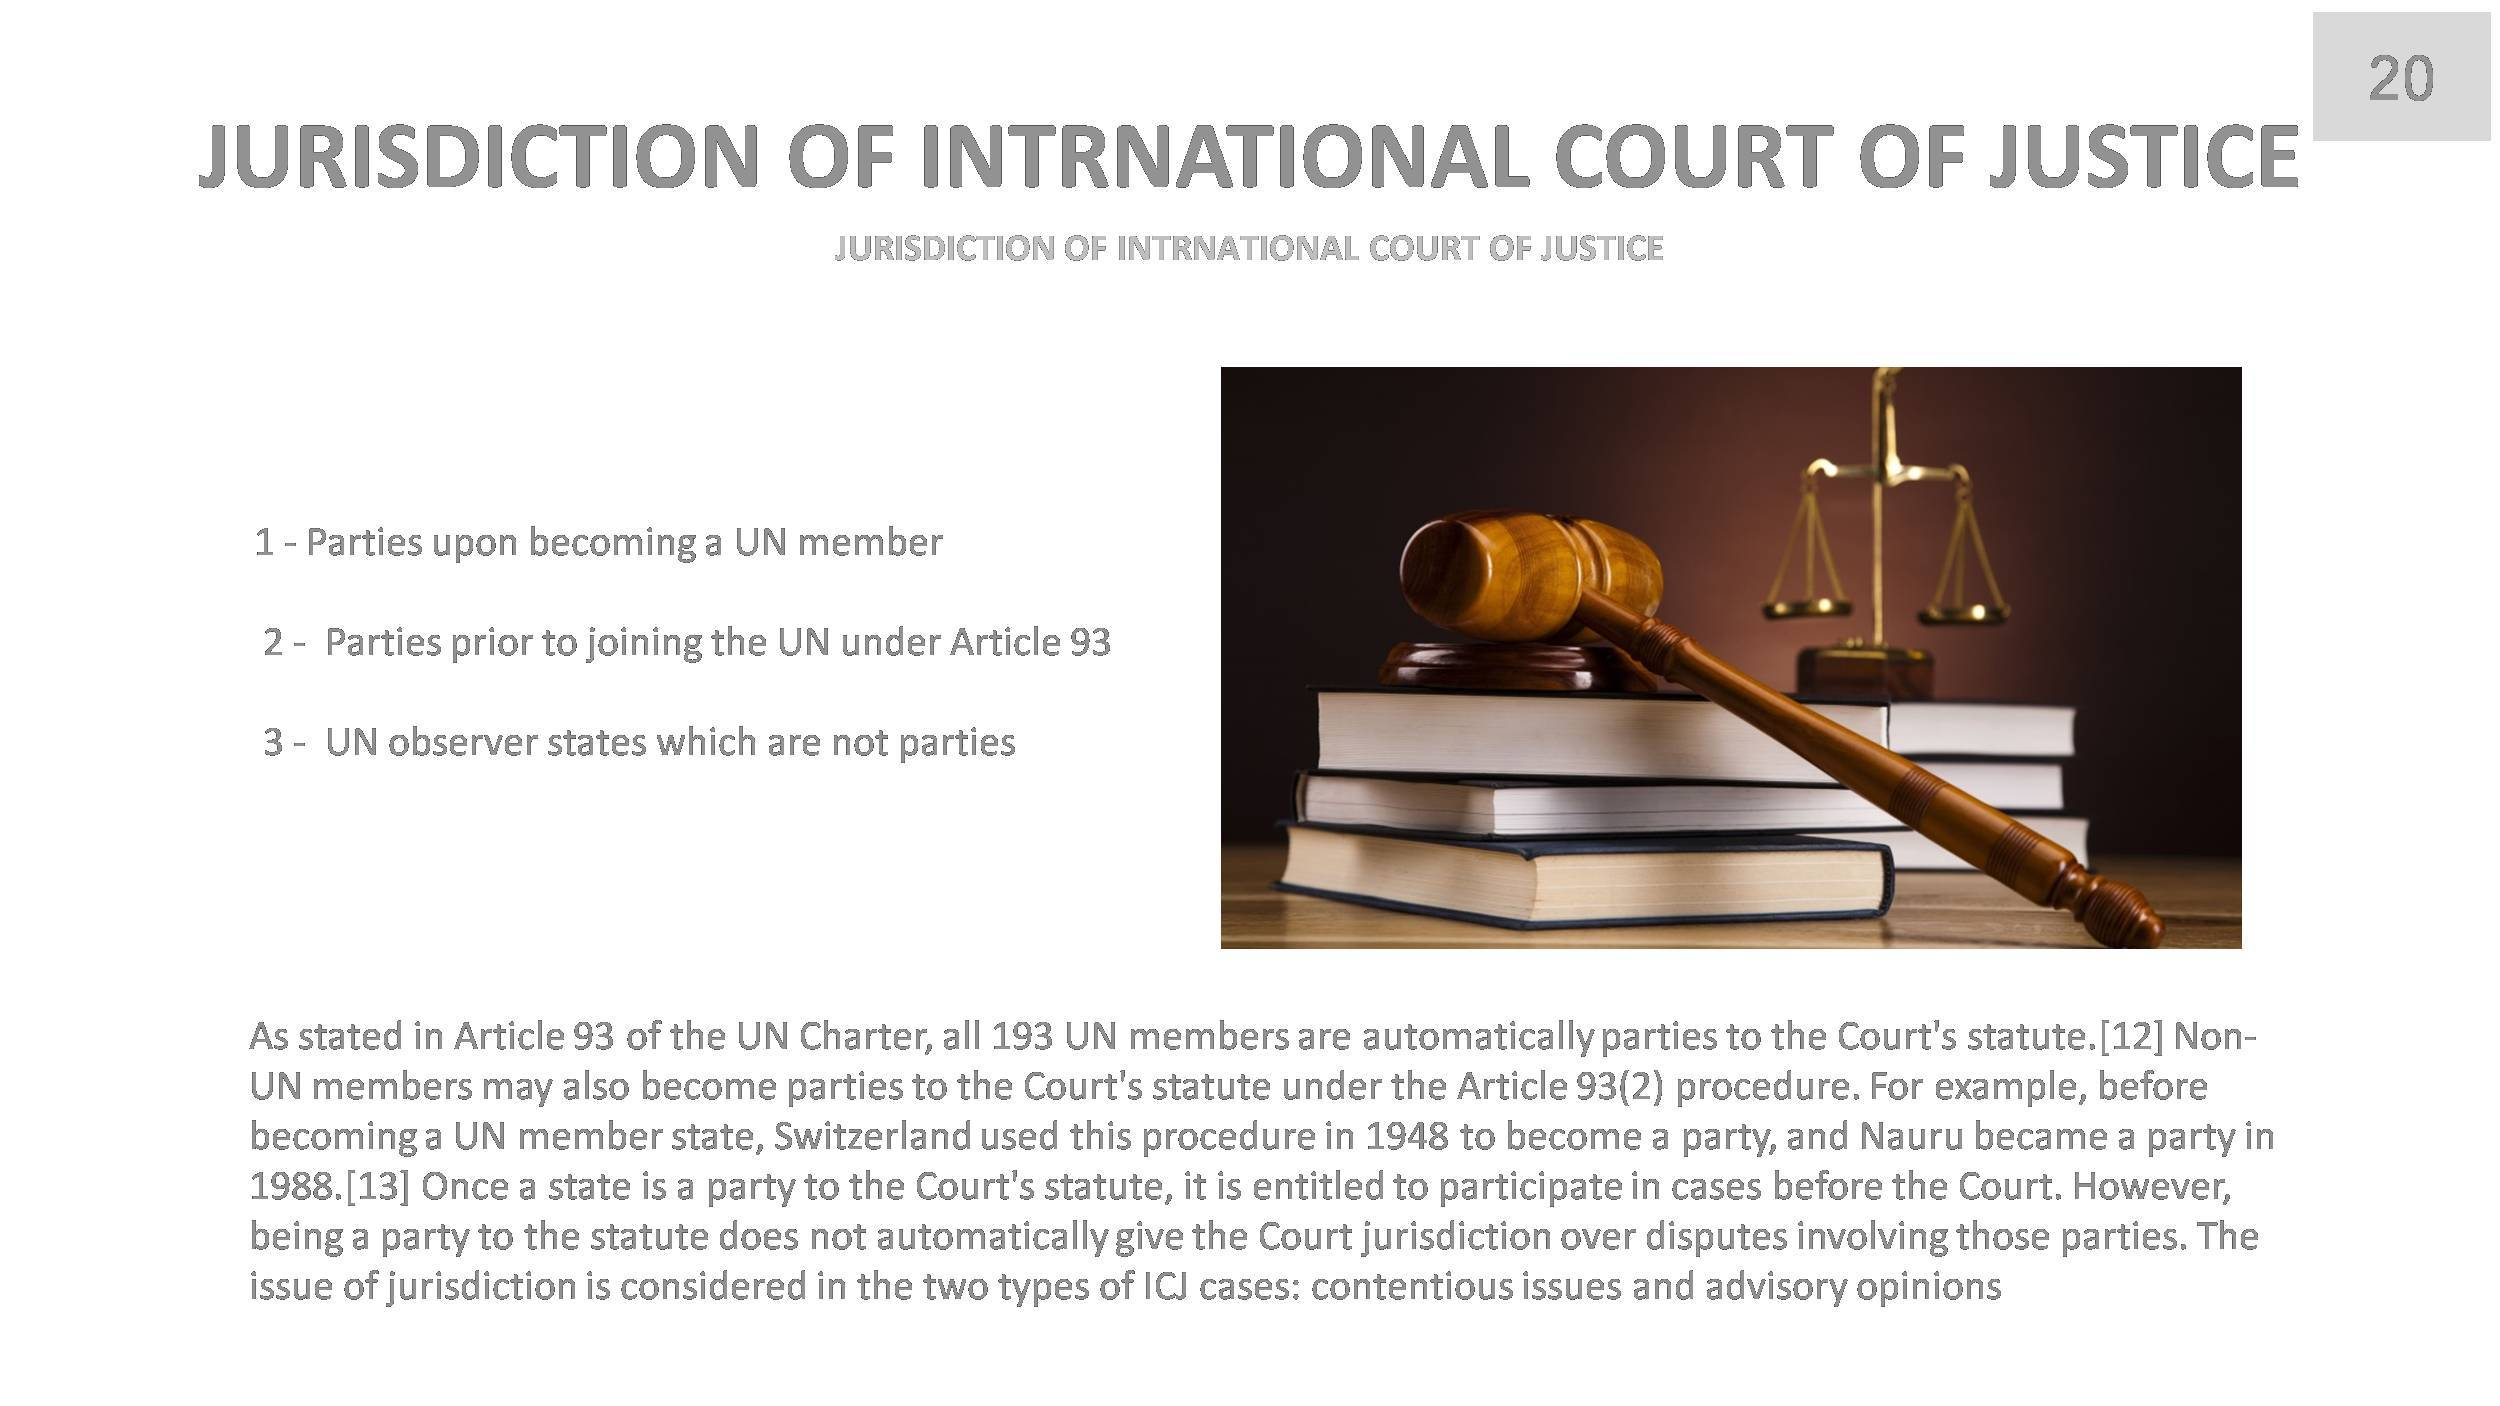 a study of terrorism and the international court of justice An international terrorism court was also suggested as the appropriate jurisdiction for terrorism at the santa clara university school of law third annual international humanitarian law terrorism and international criminal justice.